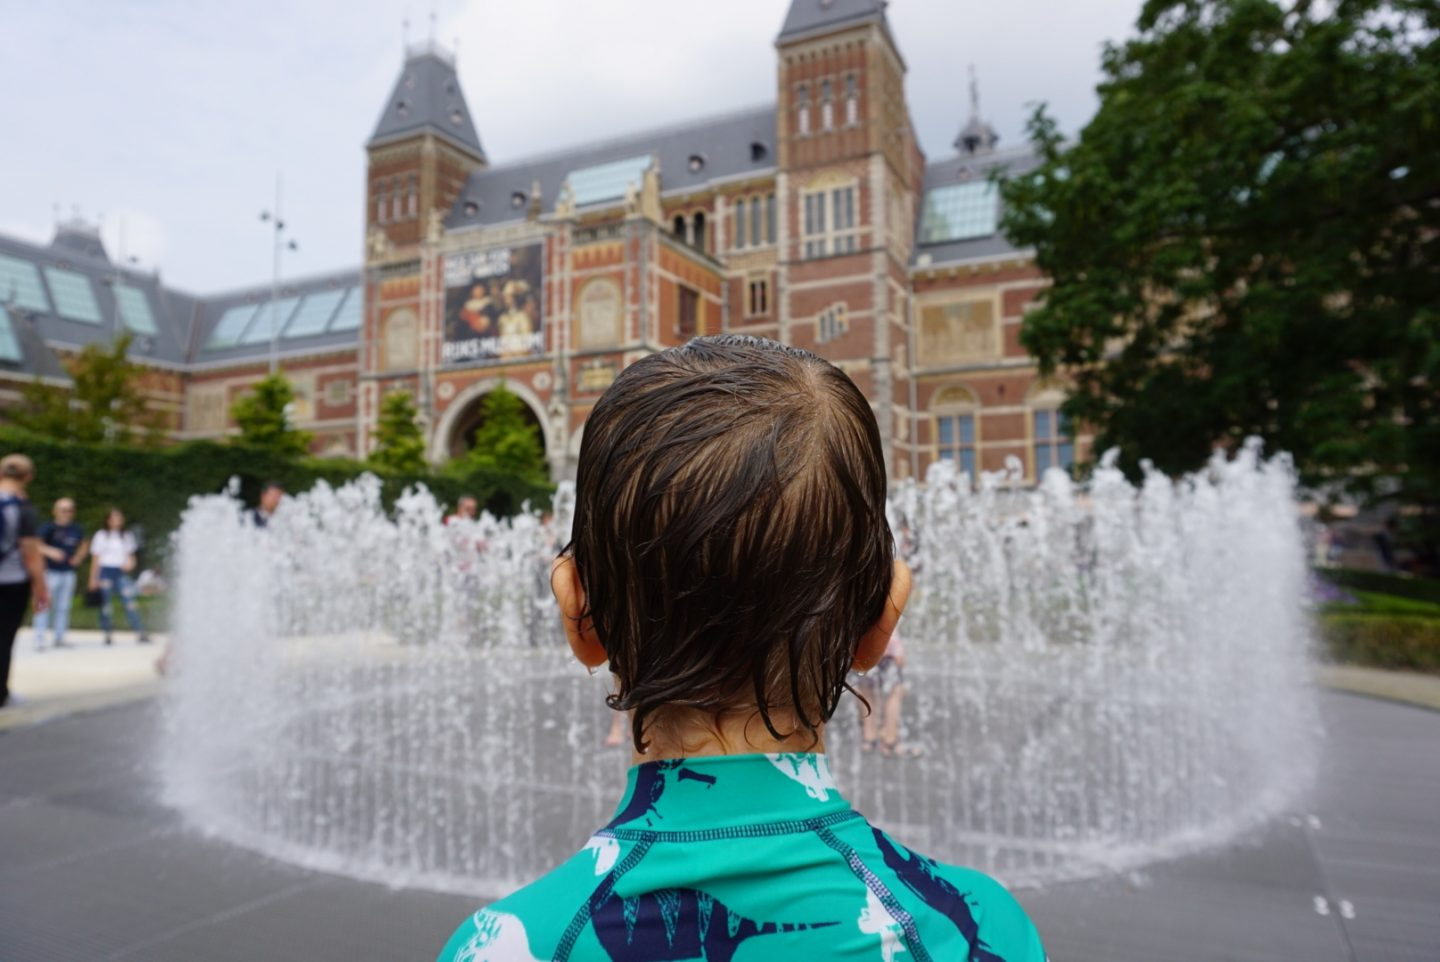 Museum Boy stares at the water fountains in front of the Rijksmuseum Amsterdam